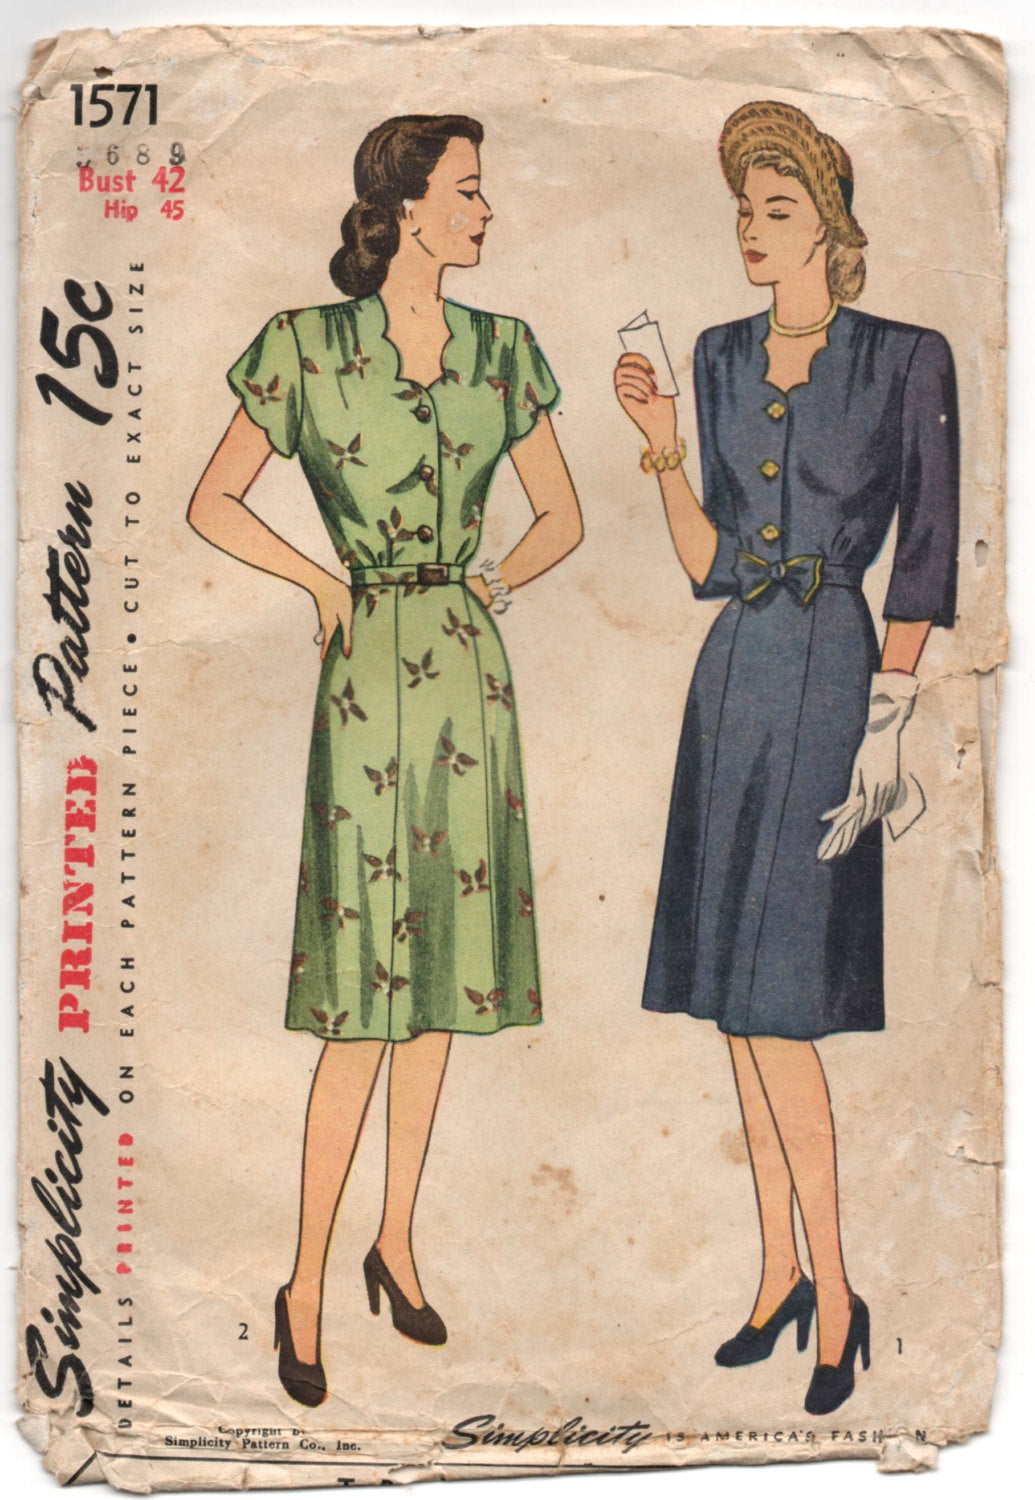 1940's Simplicity One-Piece Dress with Scallop neckline and Belted Waist - Bust 42